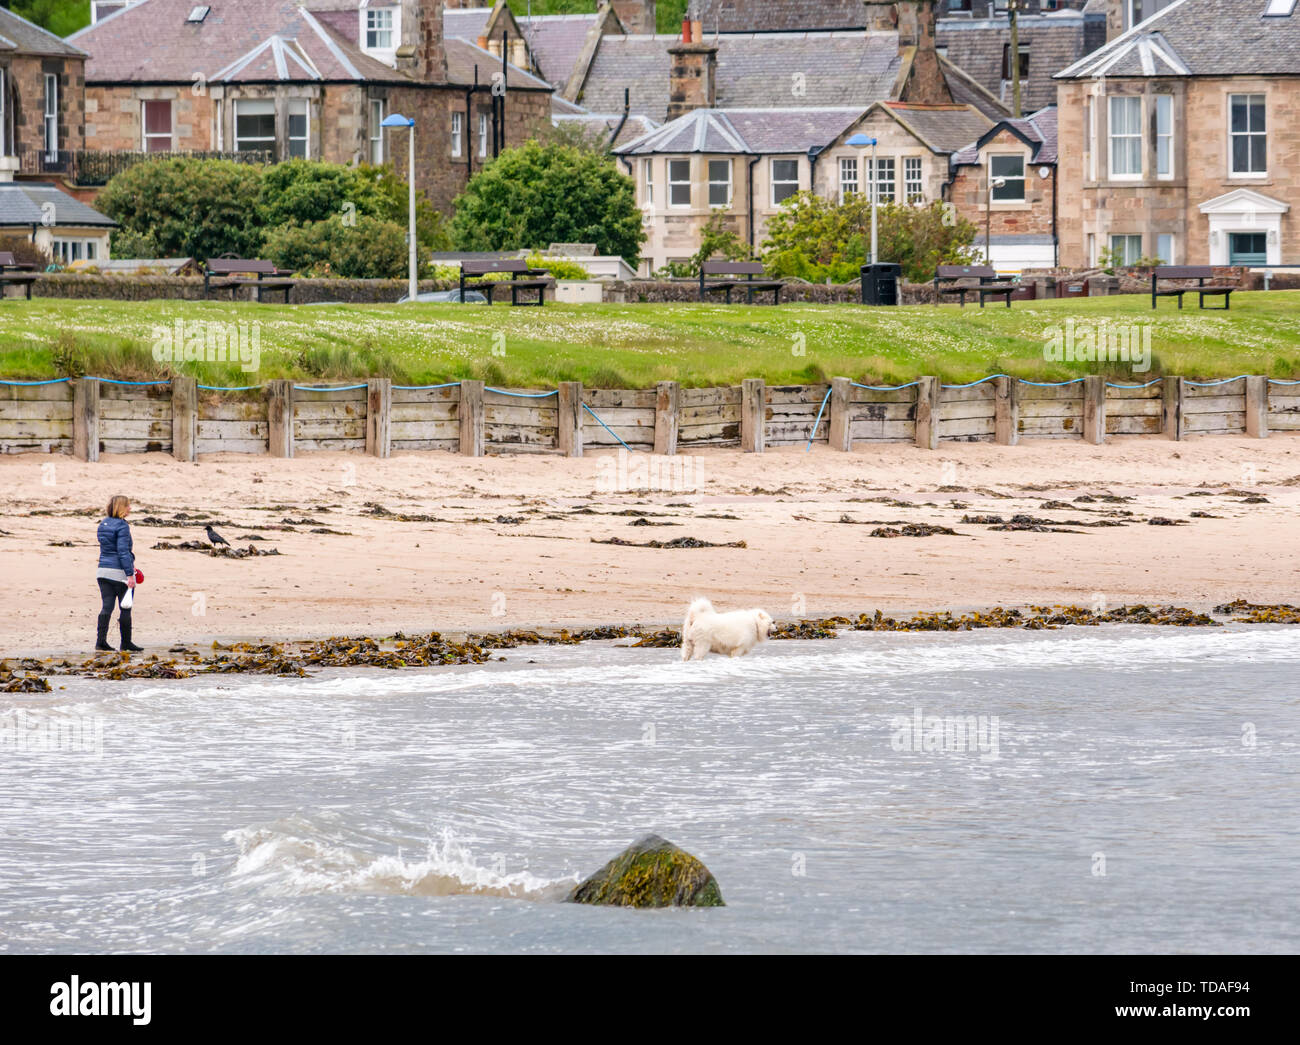 North Berwick, East Lothian, Scotland, United Kingdom, 14th June 2019. UK Weather: After East Lothian suffered heavy rain the last few days, the weather has brightened, and people enjoy the outdoor pursuits in the seaside town. A wman walks a dog on West Bay beach. Credit: Sally Anderson/Alamy Live News - Stock Image